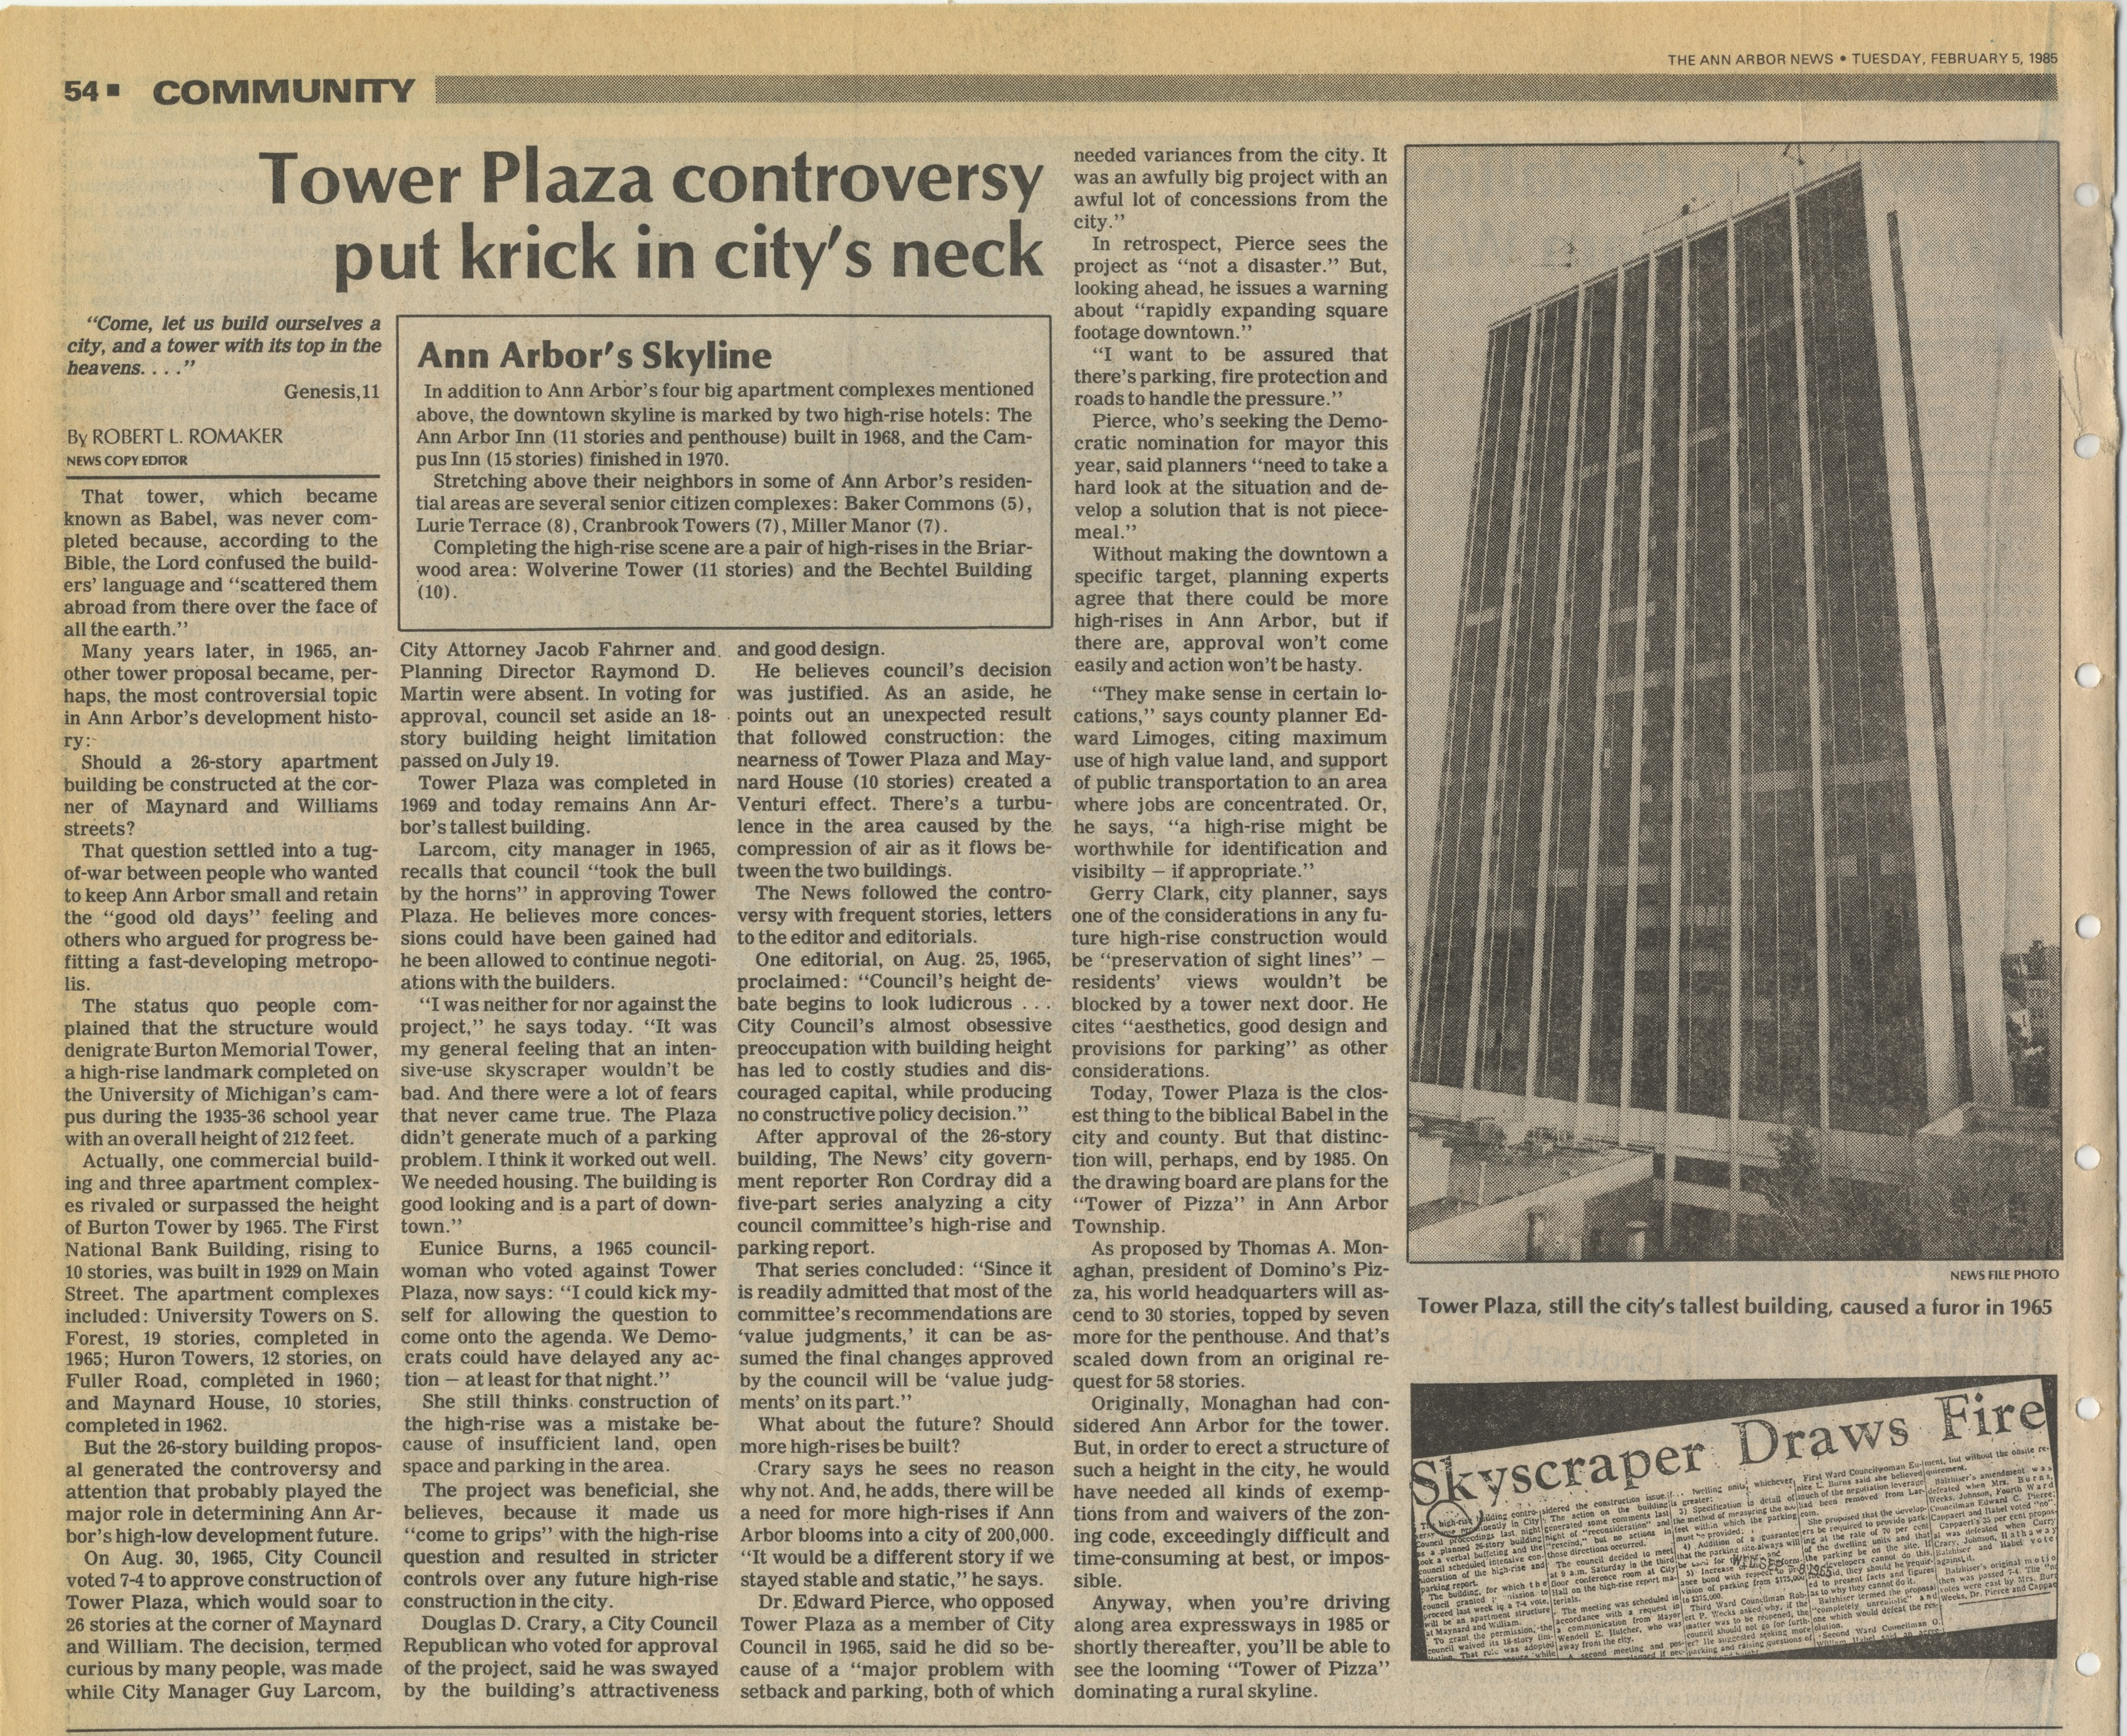 Tower Plaza Controversy Put Krick In City's Neck image